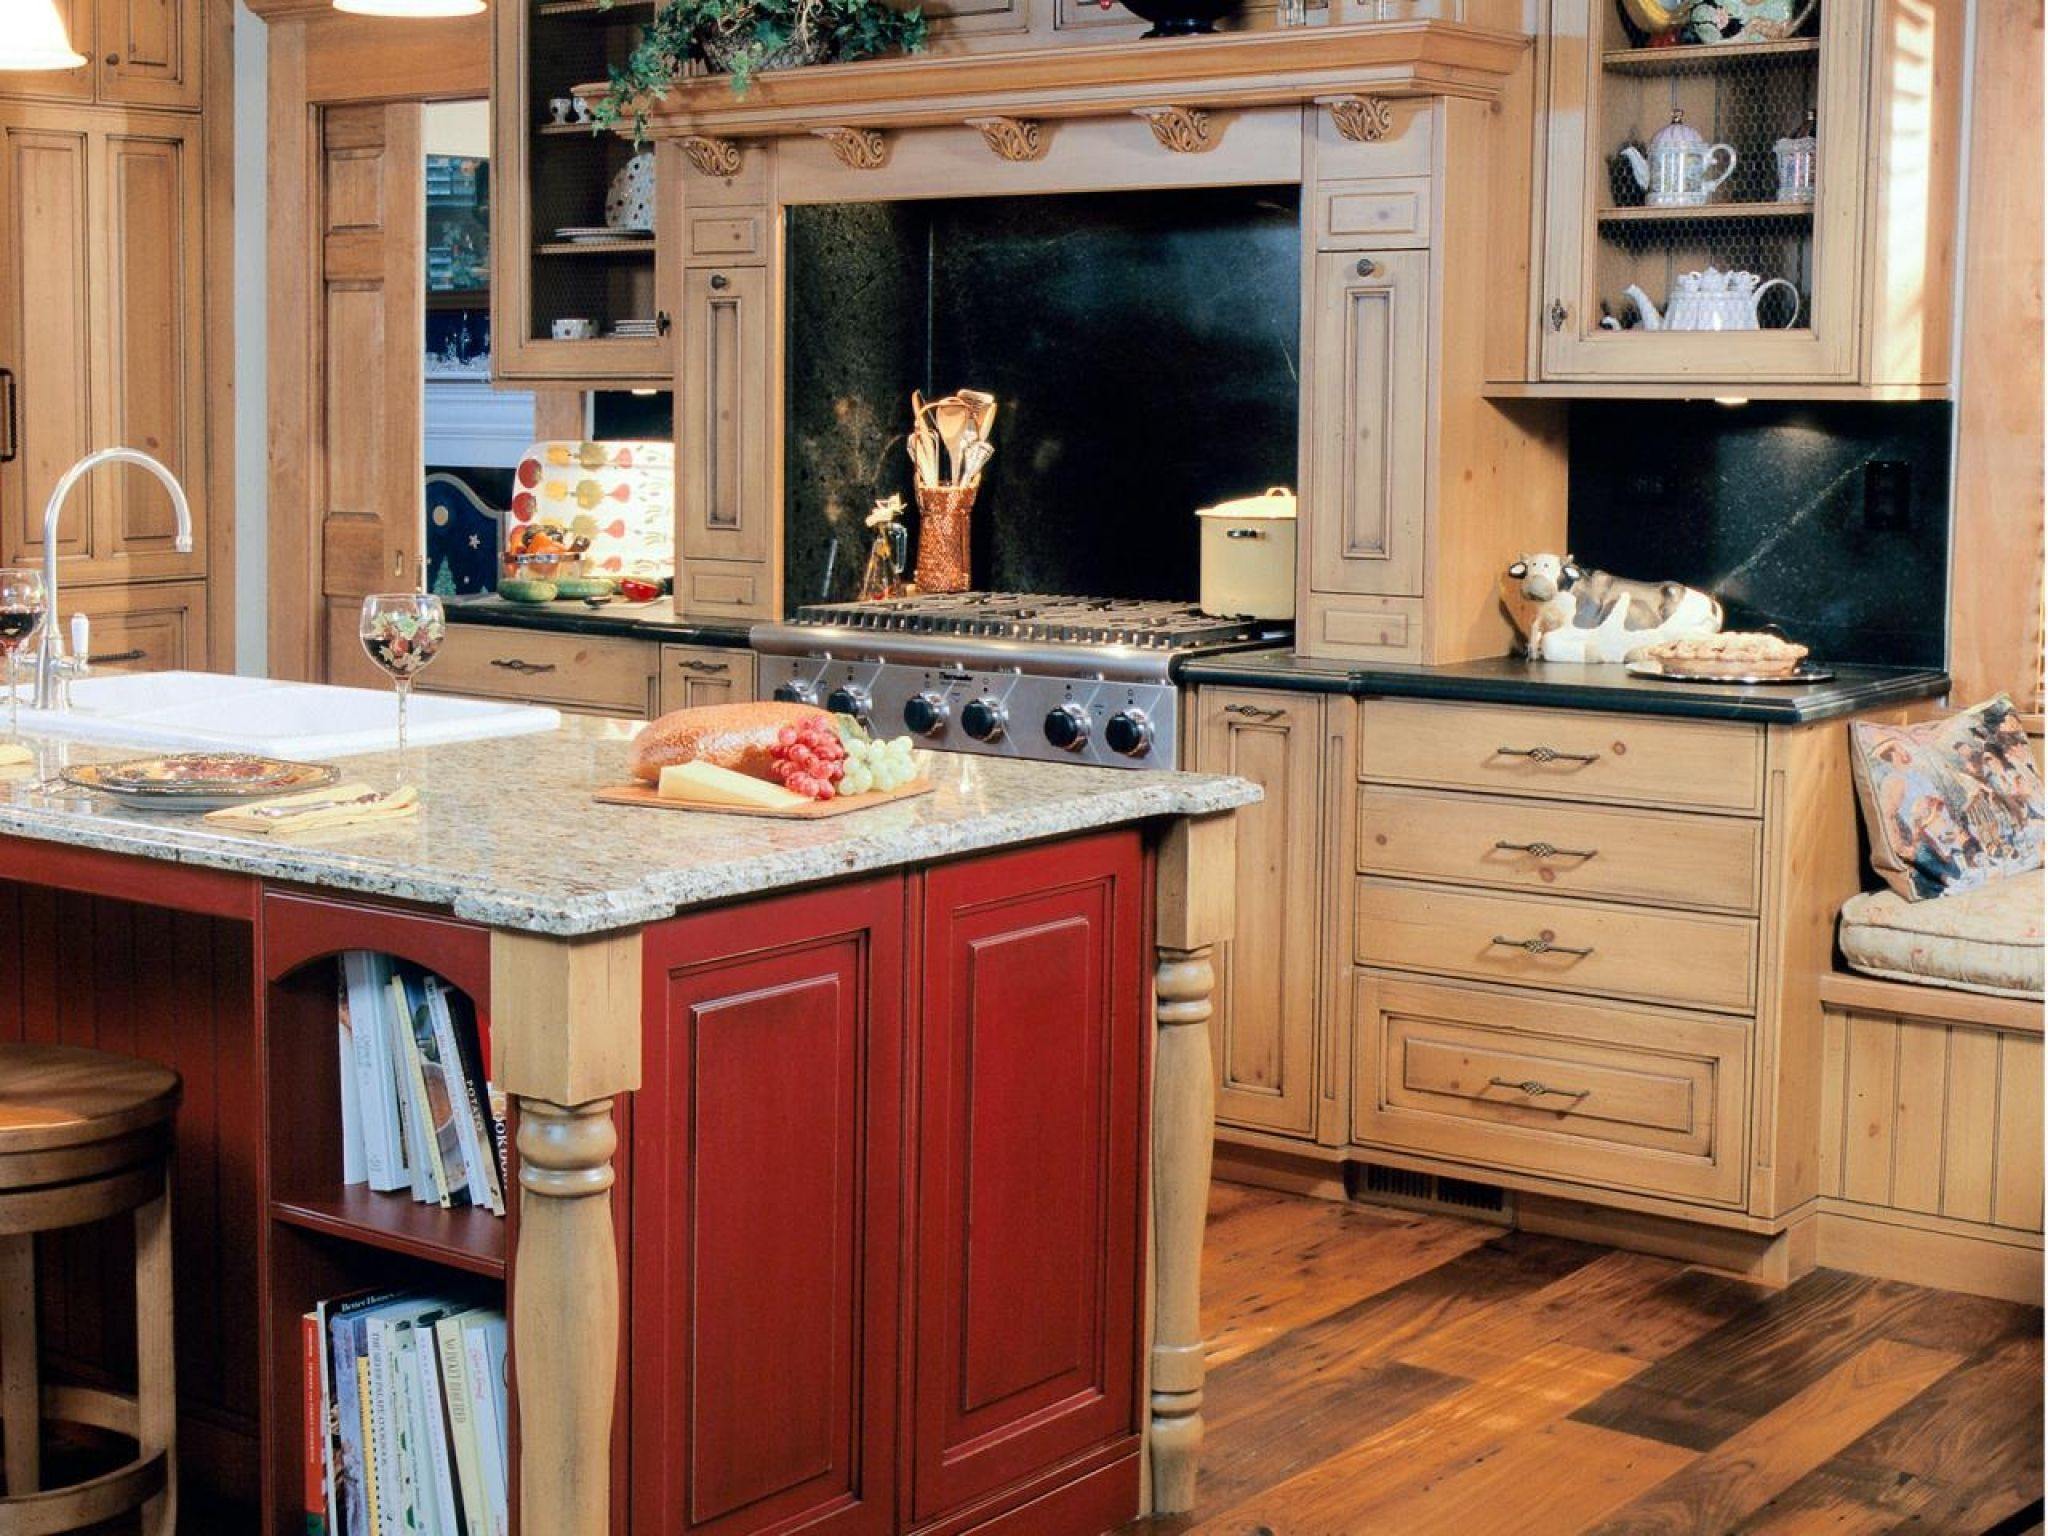 Staining kitchen cabinets custom kitchen island ideas check more